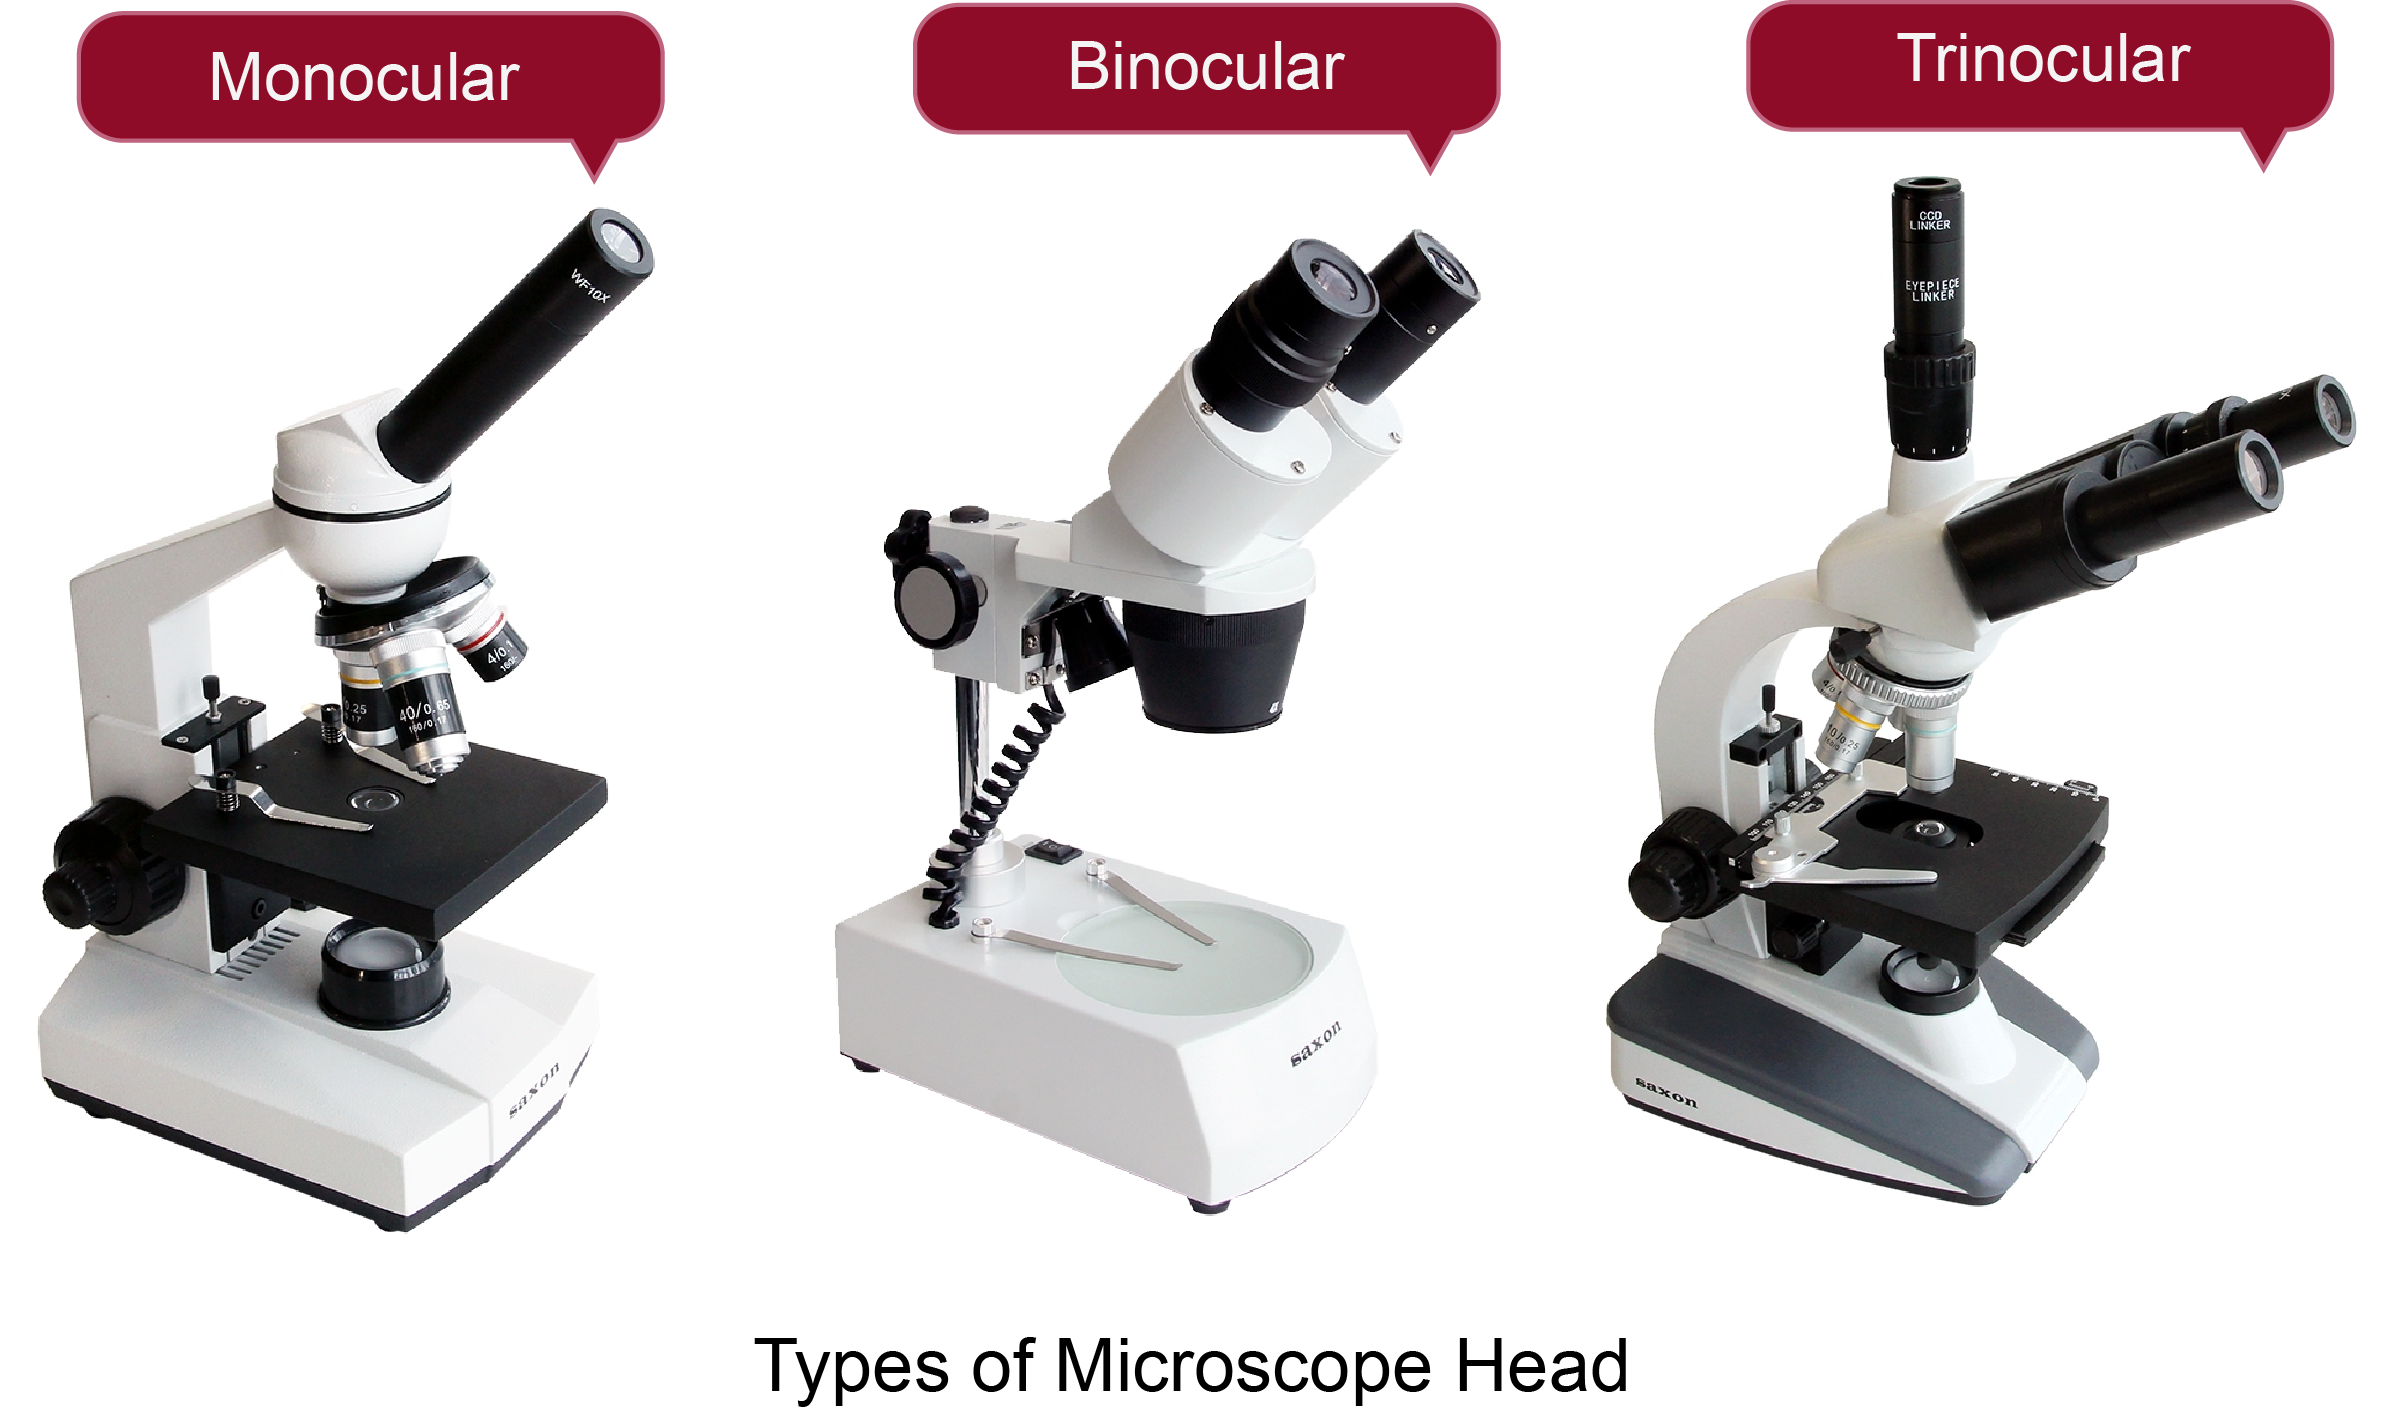 Different Types of Microscope Heads